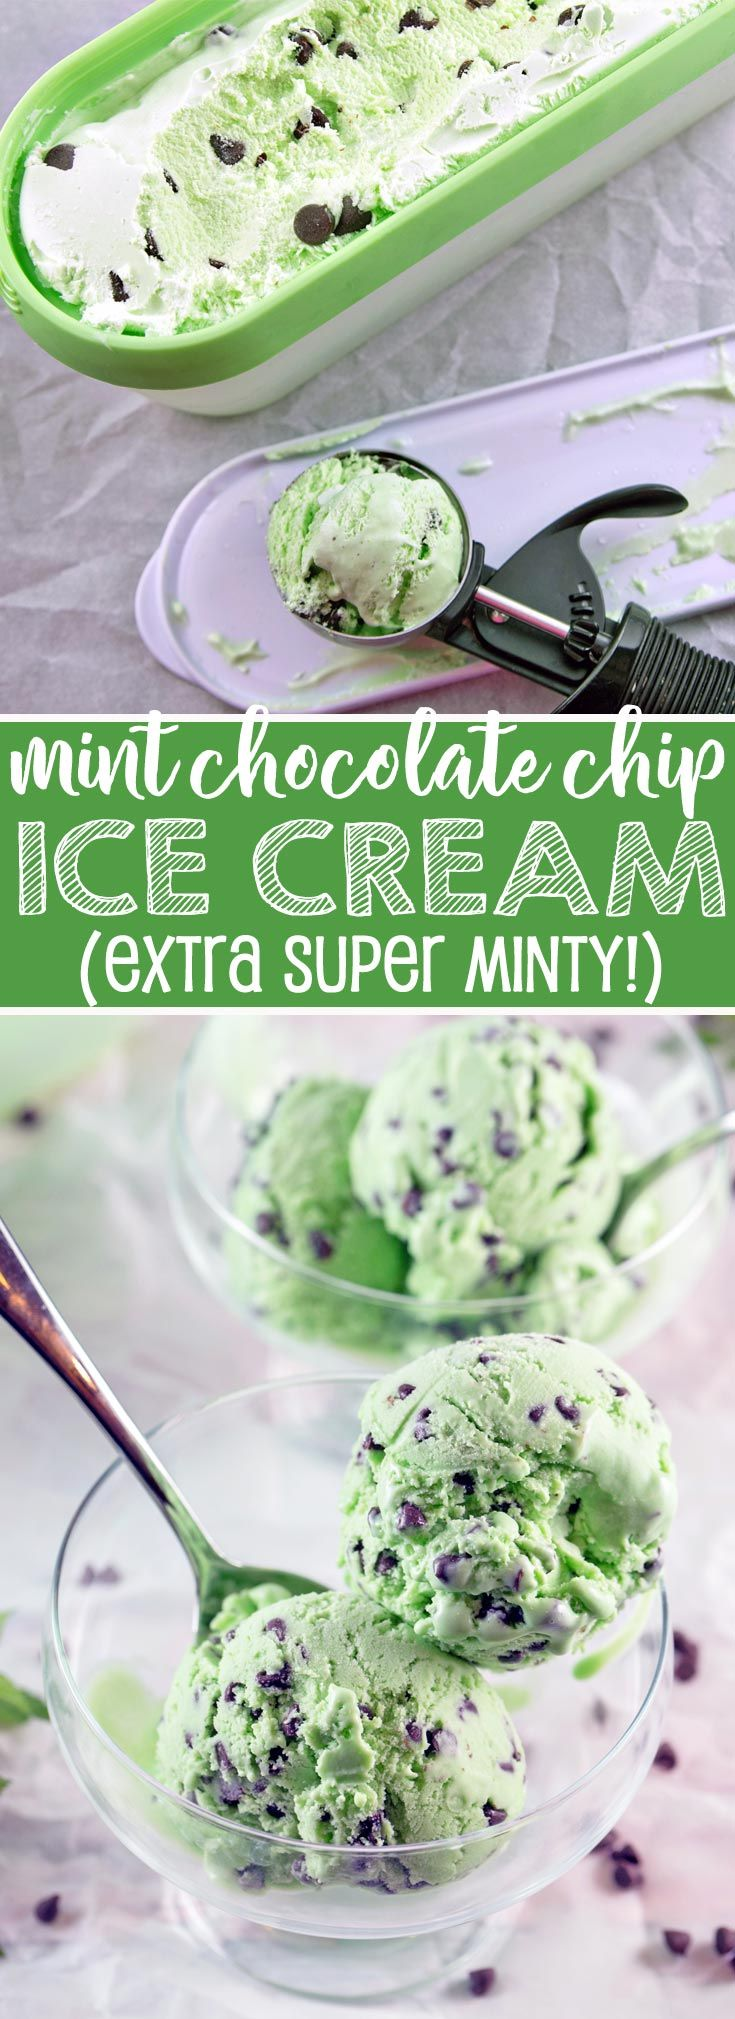 Mint Chocolate Chip Ice Cream: this is the mintiest chocolate chip ice cream out there! A perfectly smooth and creamy base infused with extra mint flavor and just the right amount of chocolate chips. {Bunsen Burner Bakery} via @bnsnbrnrbakery